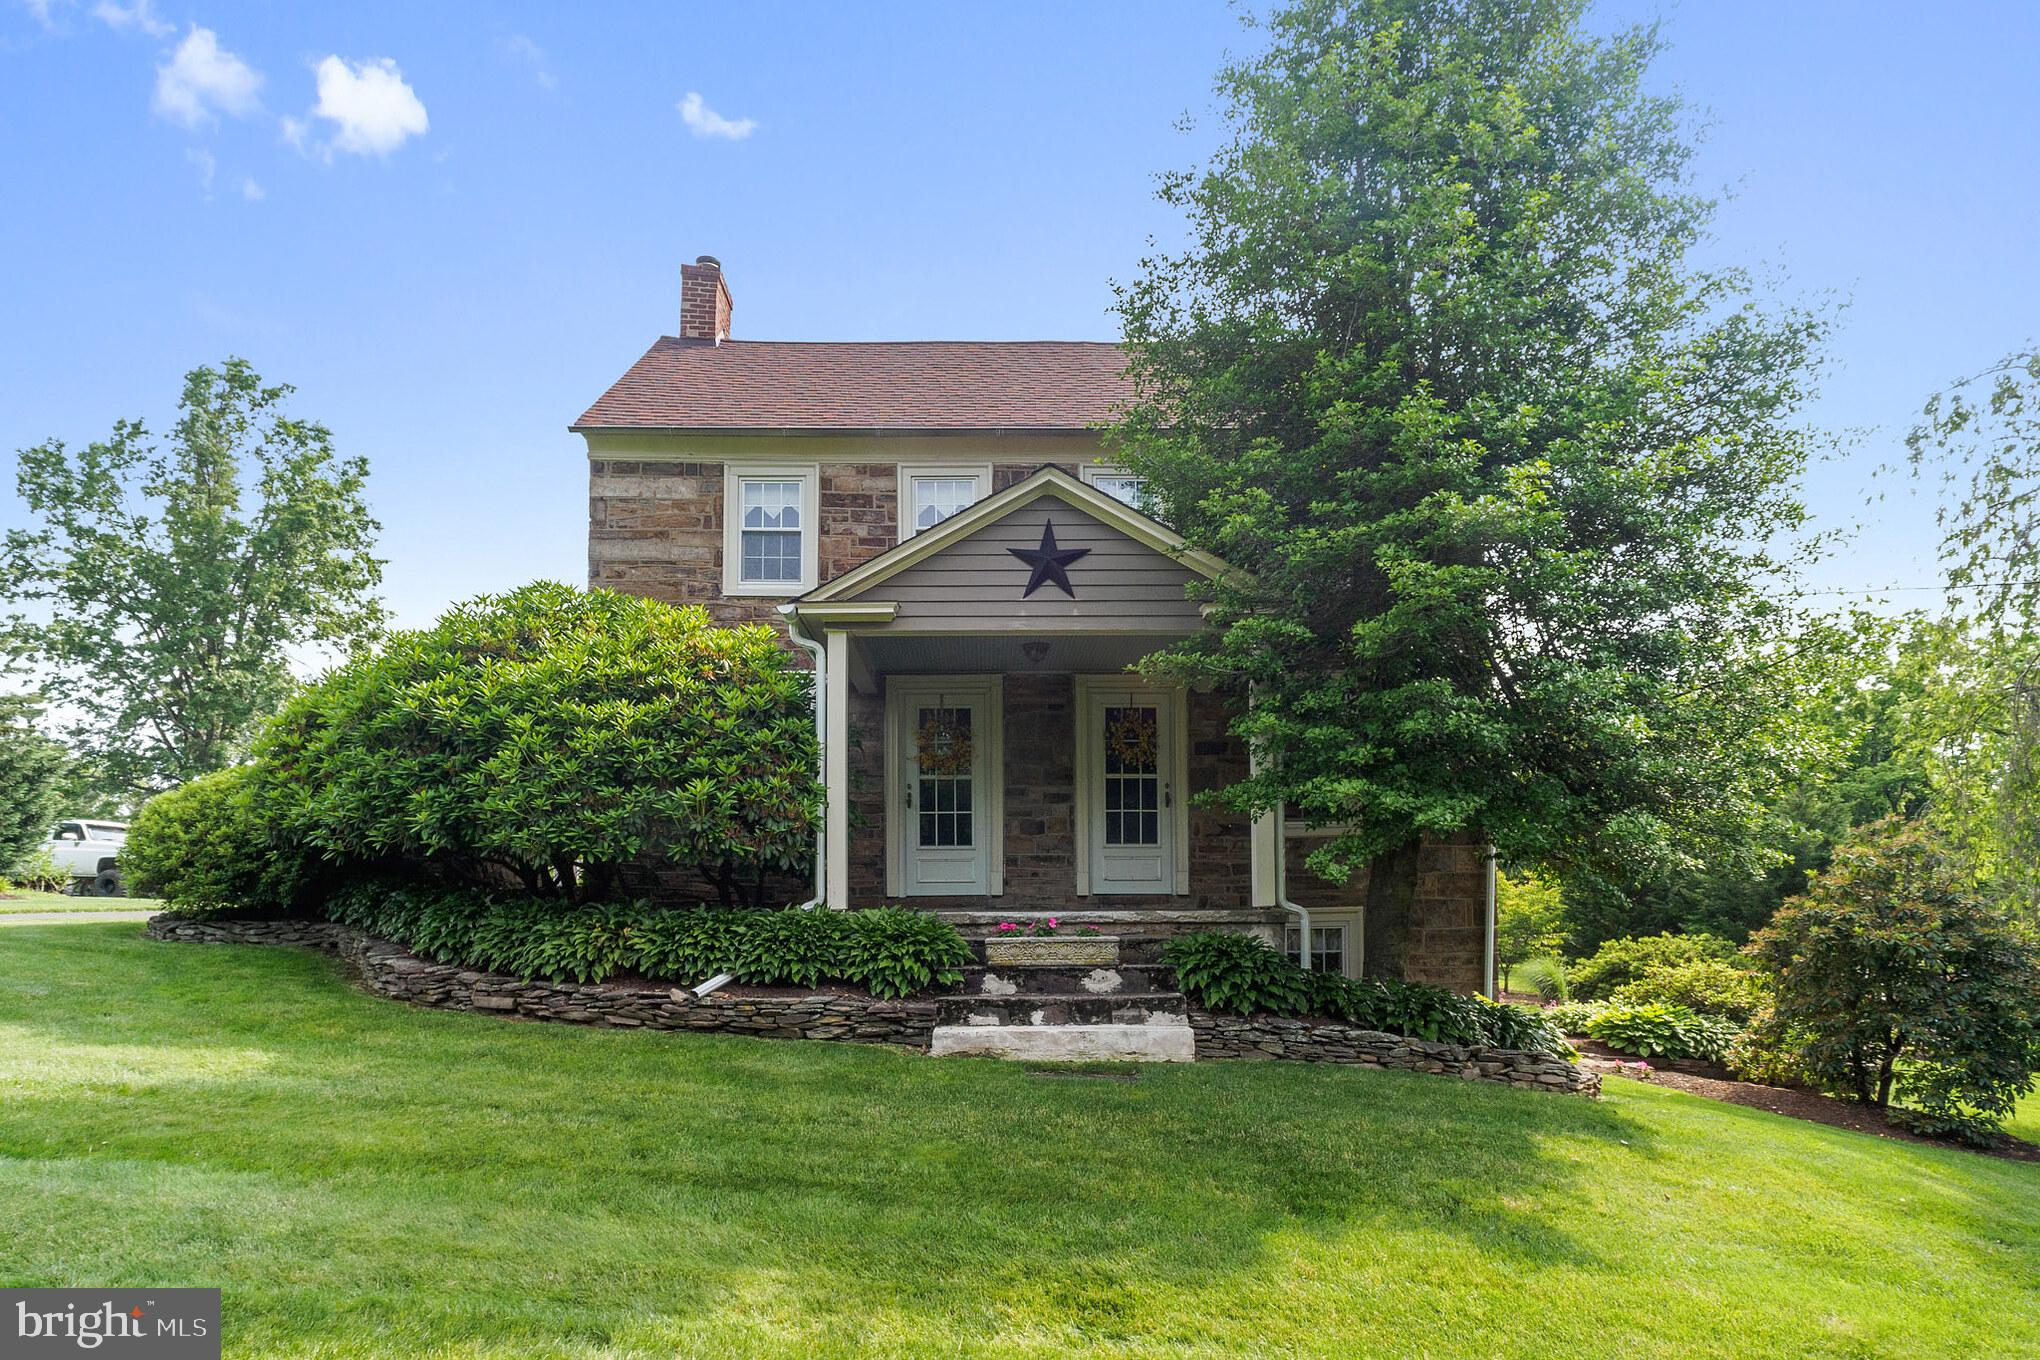 277 S SWAMP ROAD, FOUNTAINVILLE, PA 18923